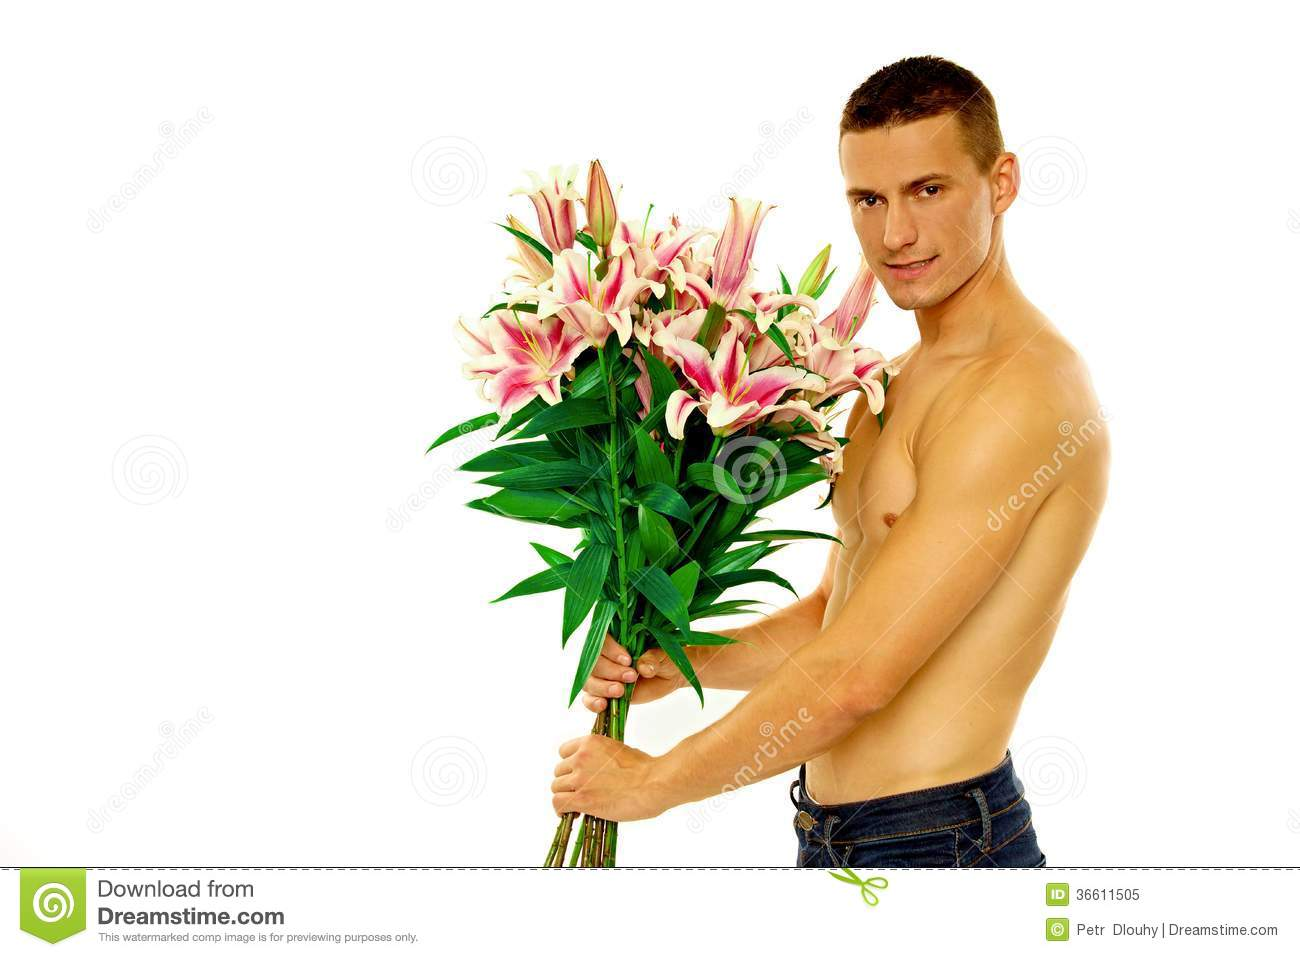 man holding flowers